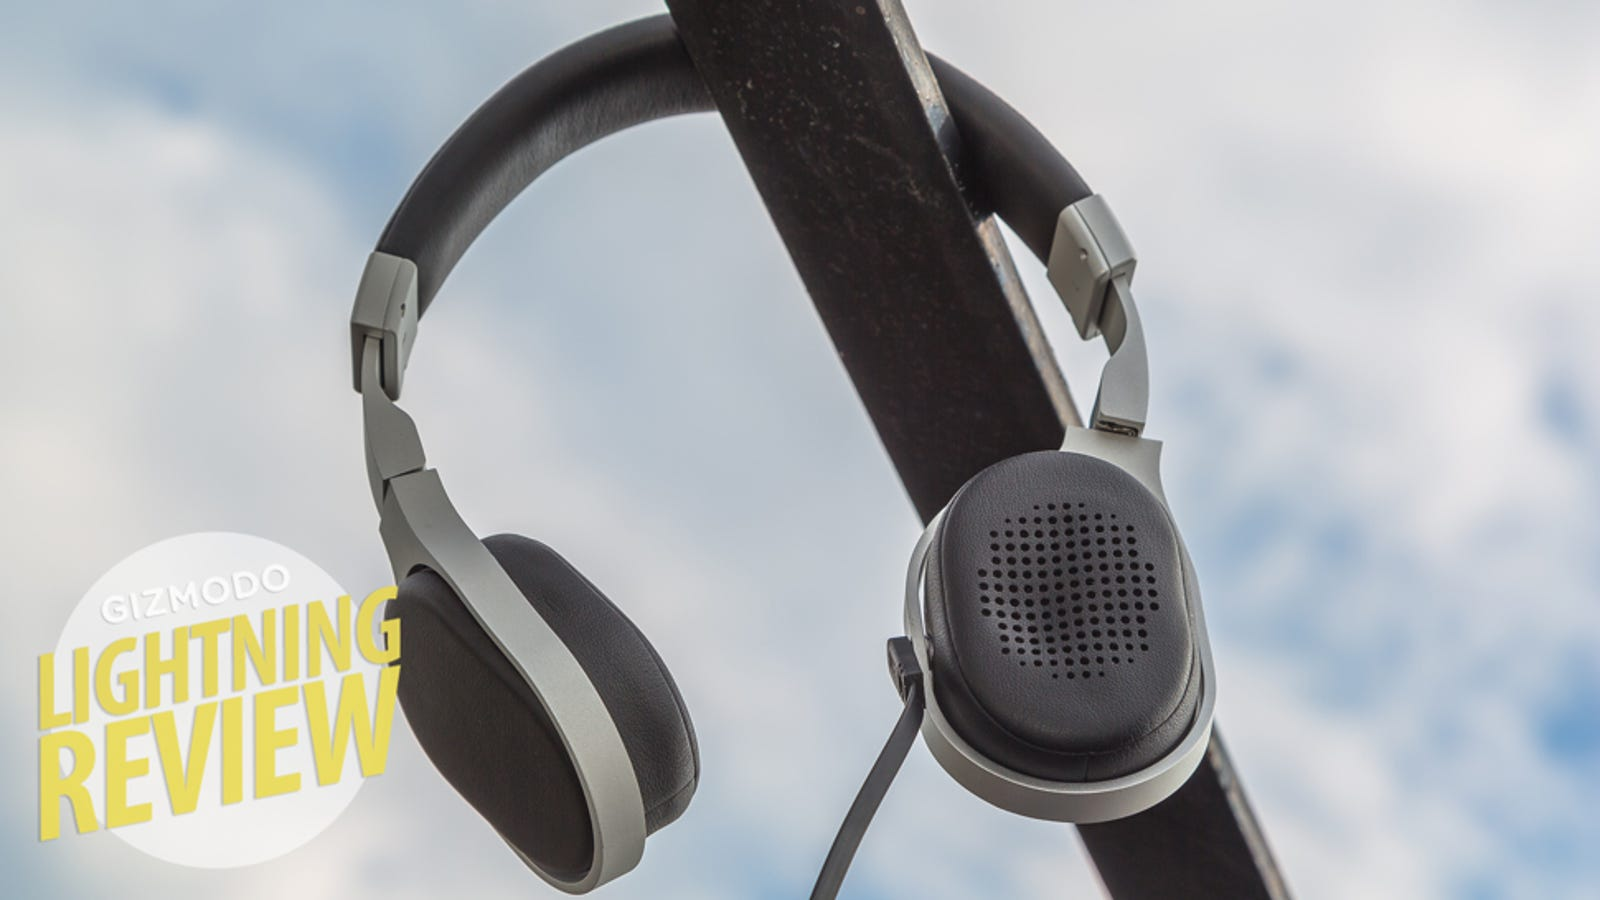 headphone extender angled - KEF M500 Headphone Review: Perfect Balance of Sound and Comfort